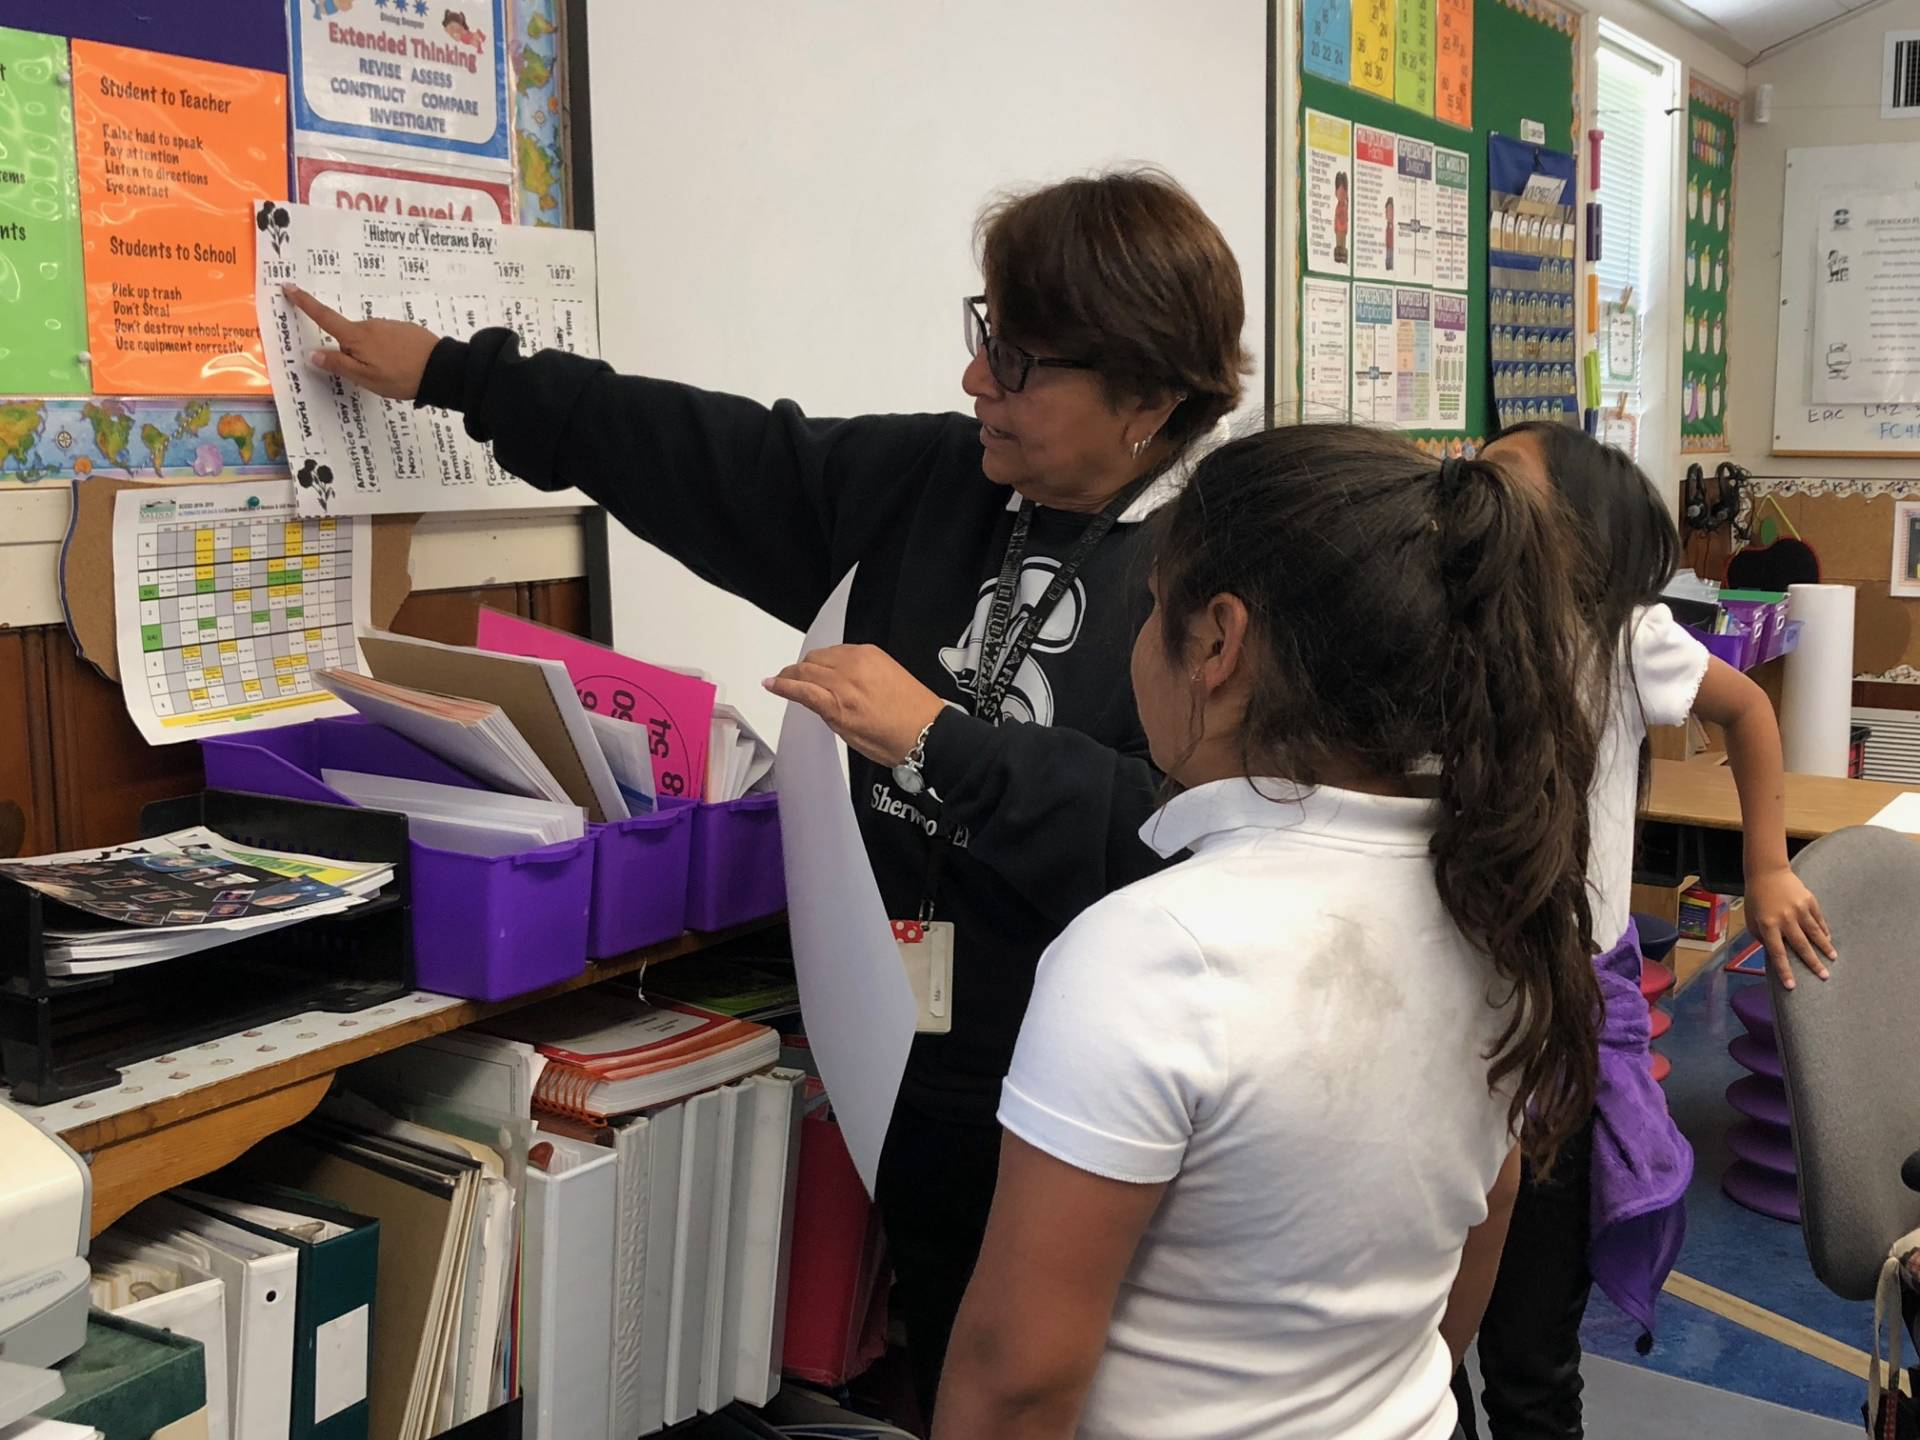 Maria Castellanos, a third-grade teacher at Sherwood Elementary School in Salinas, says about 80 percent of her students this year are homeless. Vanessa Rancaño/KQED